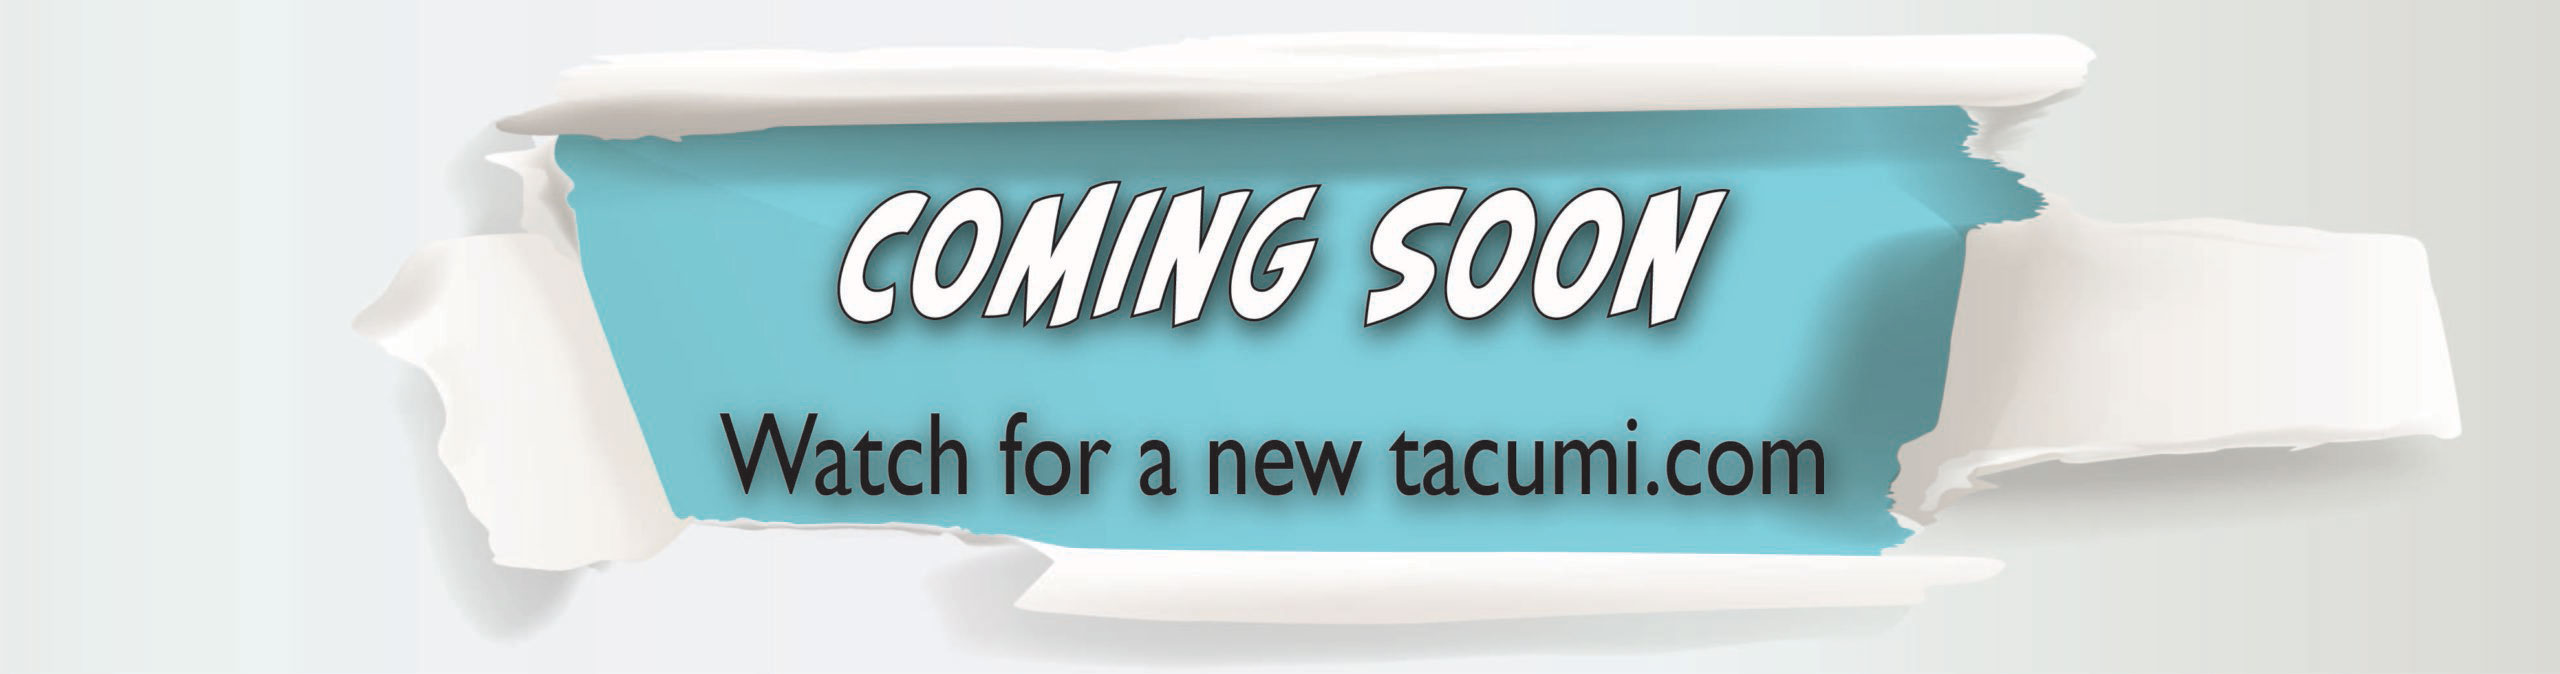 Coming Soon: Watch for a new tacumi.com